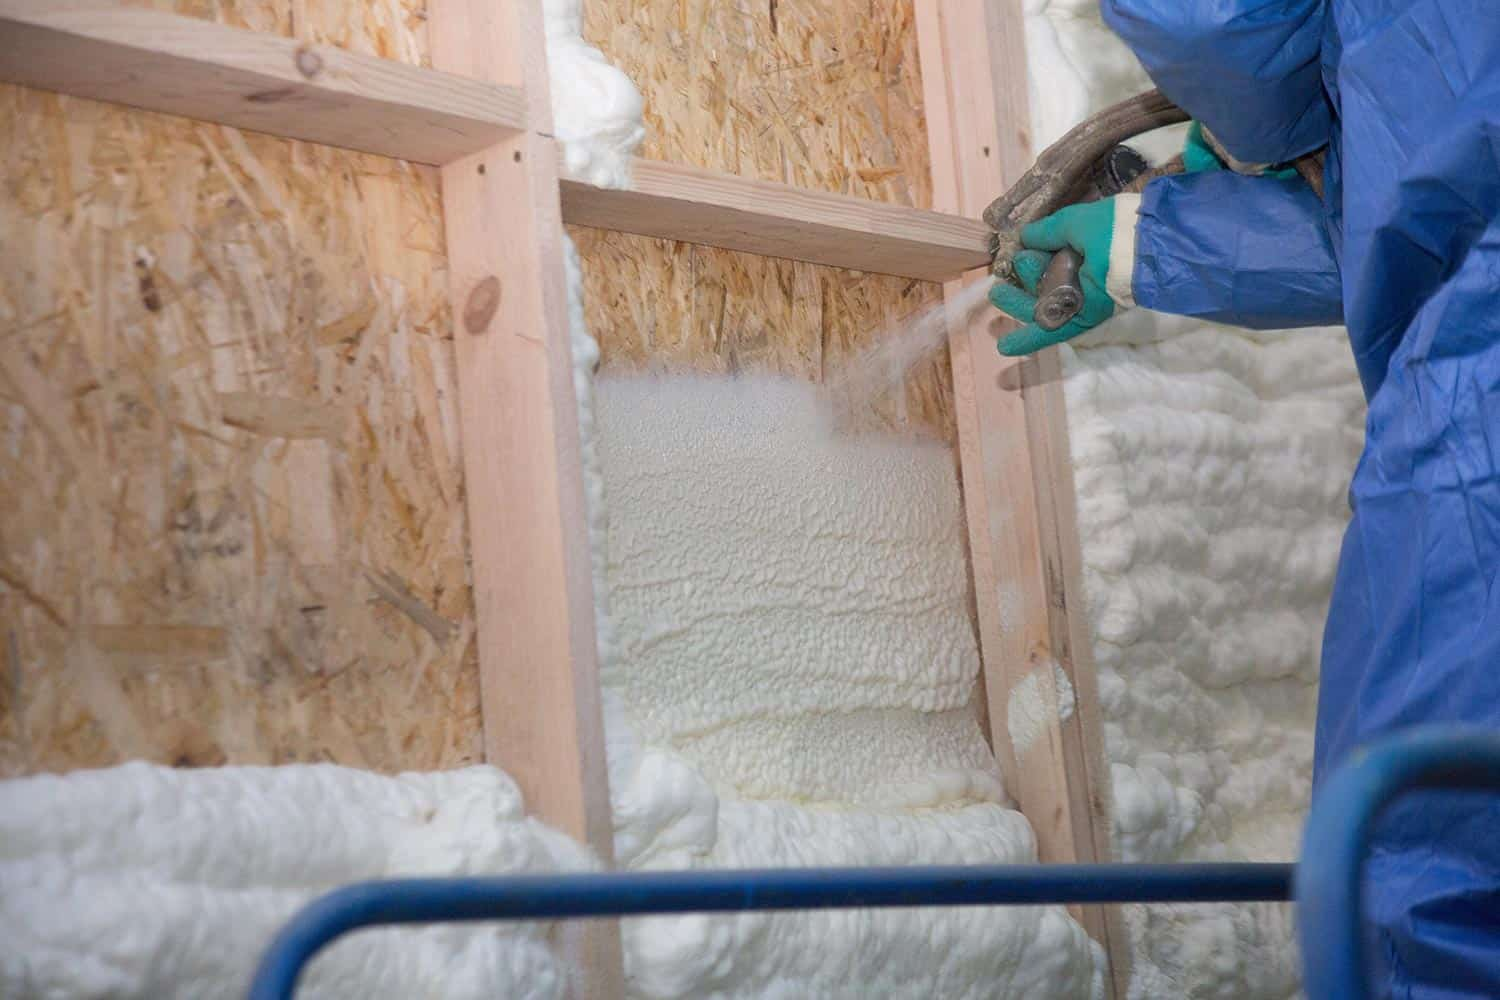 Foam applied to the walls to warm the house at construction